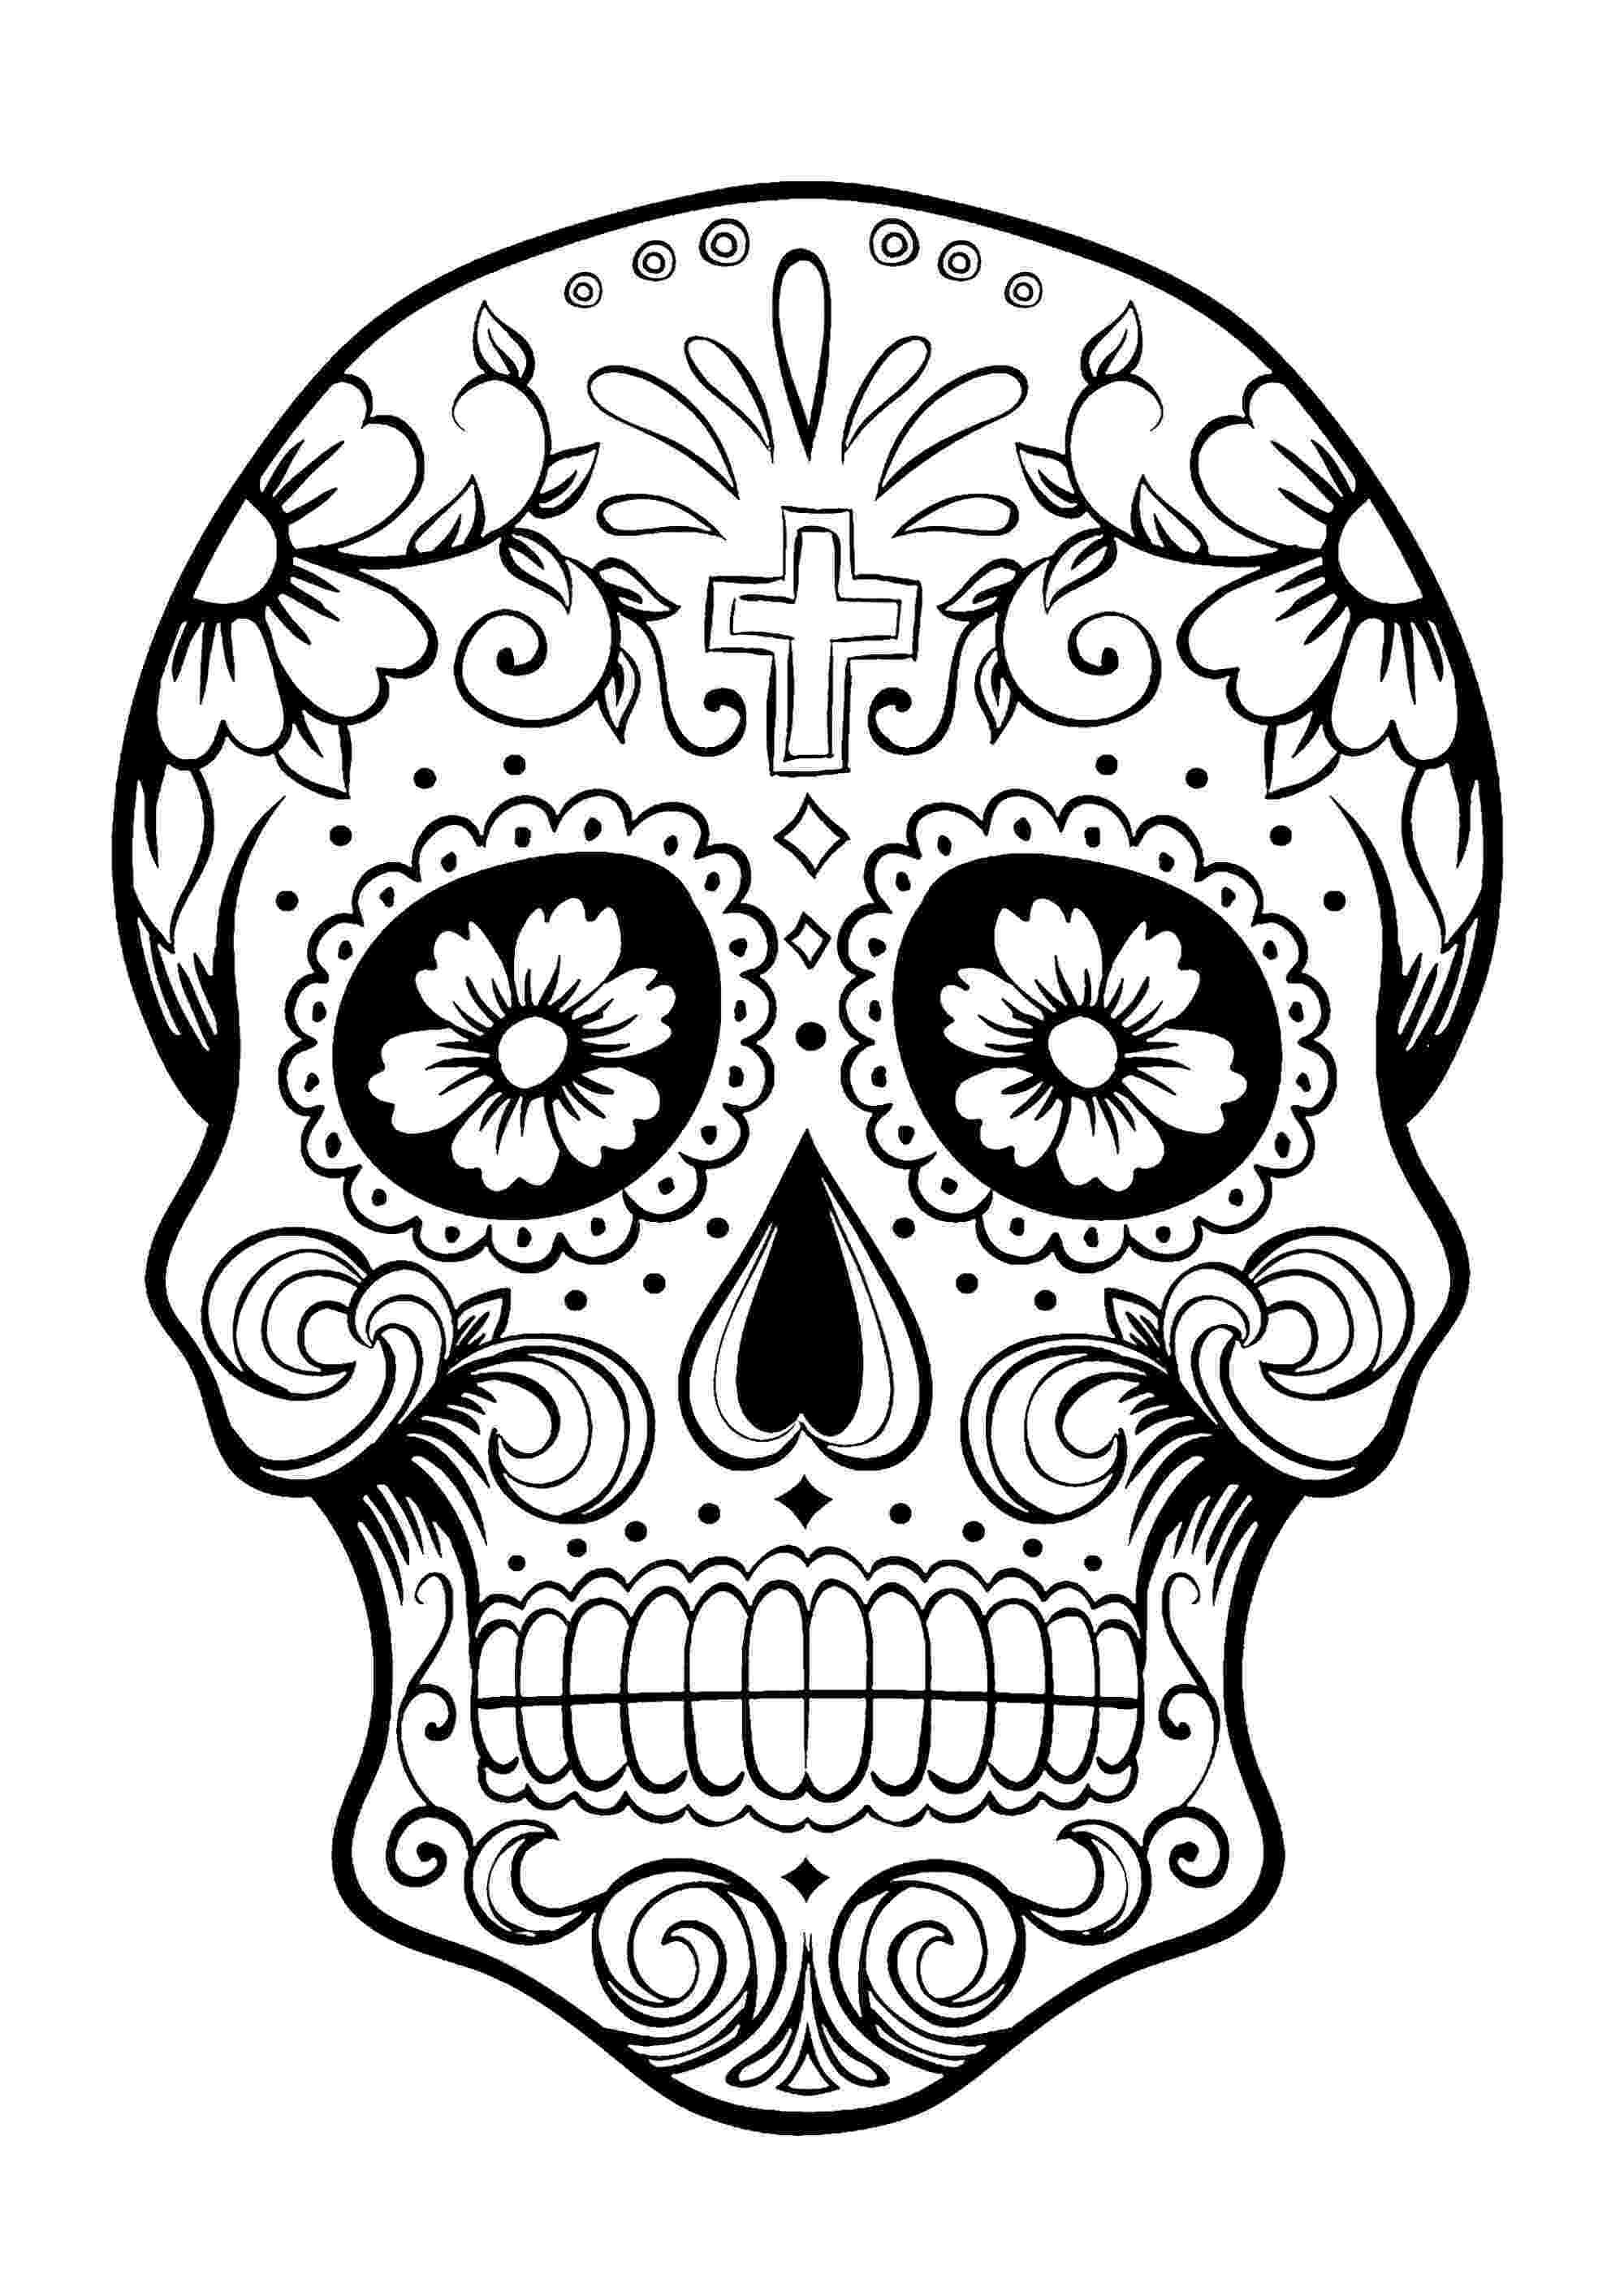 coloring books for grown ups dia de los muertos skull coloring pages for adults grown de ups for coloring dia los books muertos